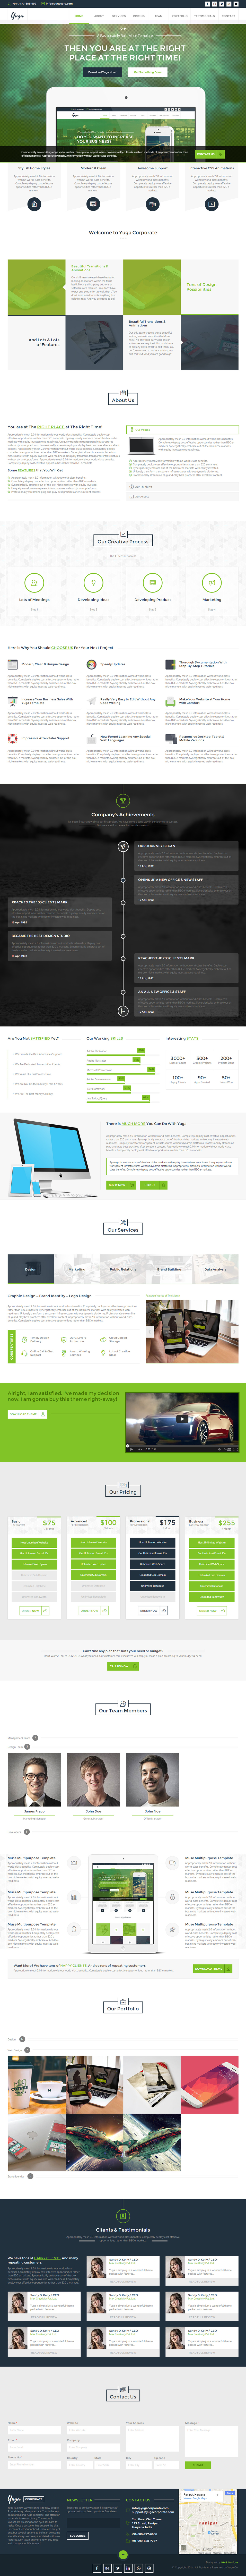 Google themes video - Yuga Is Premium Muse Multipurpose Template Parallax Scrolling One Page Google Map